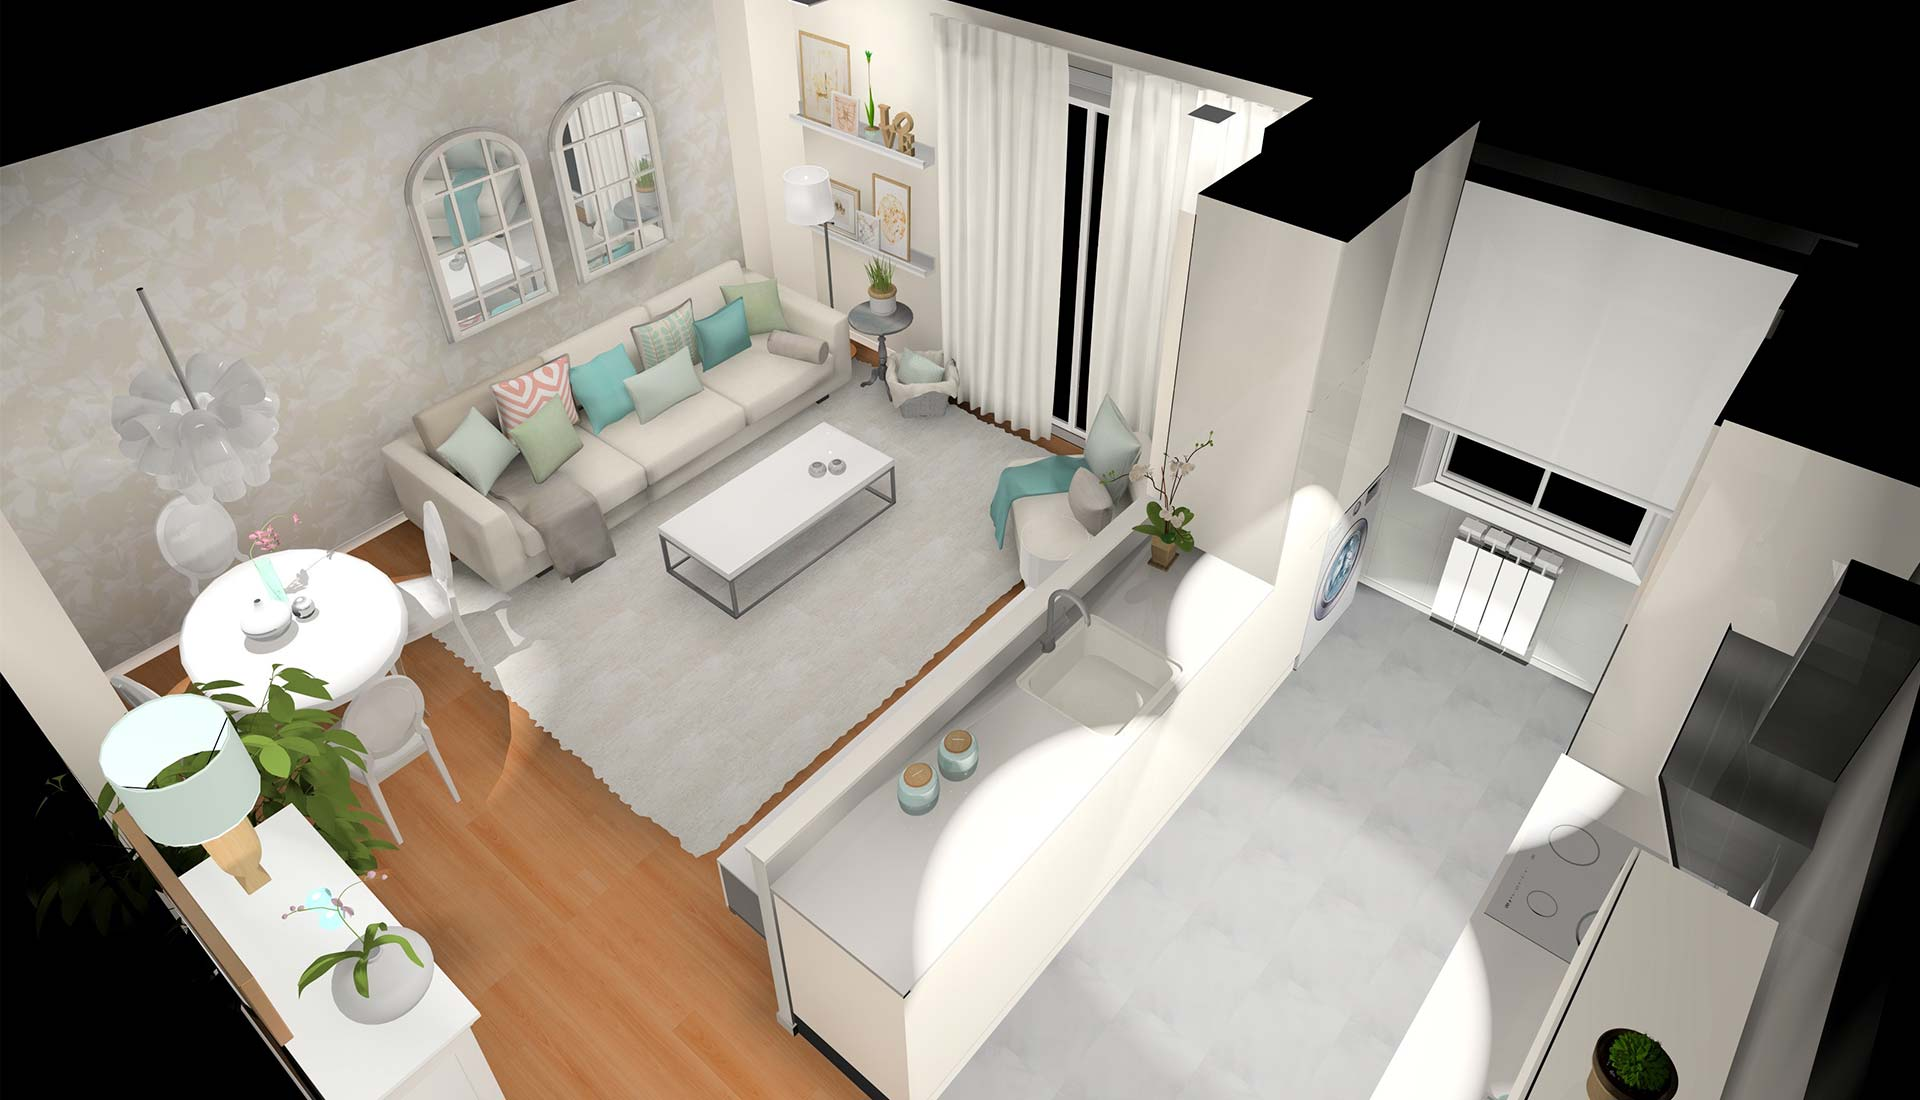 decoración interiores 3d plano